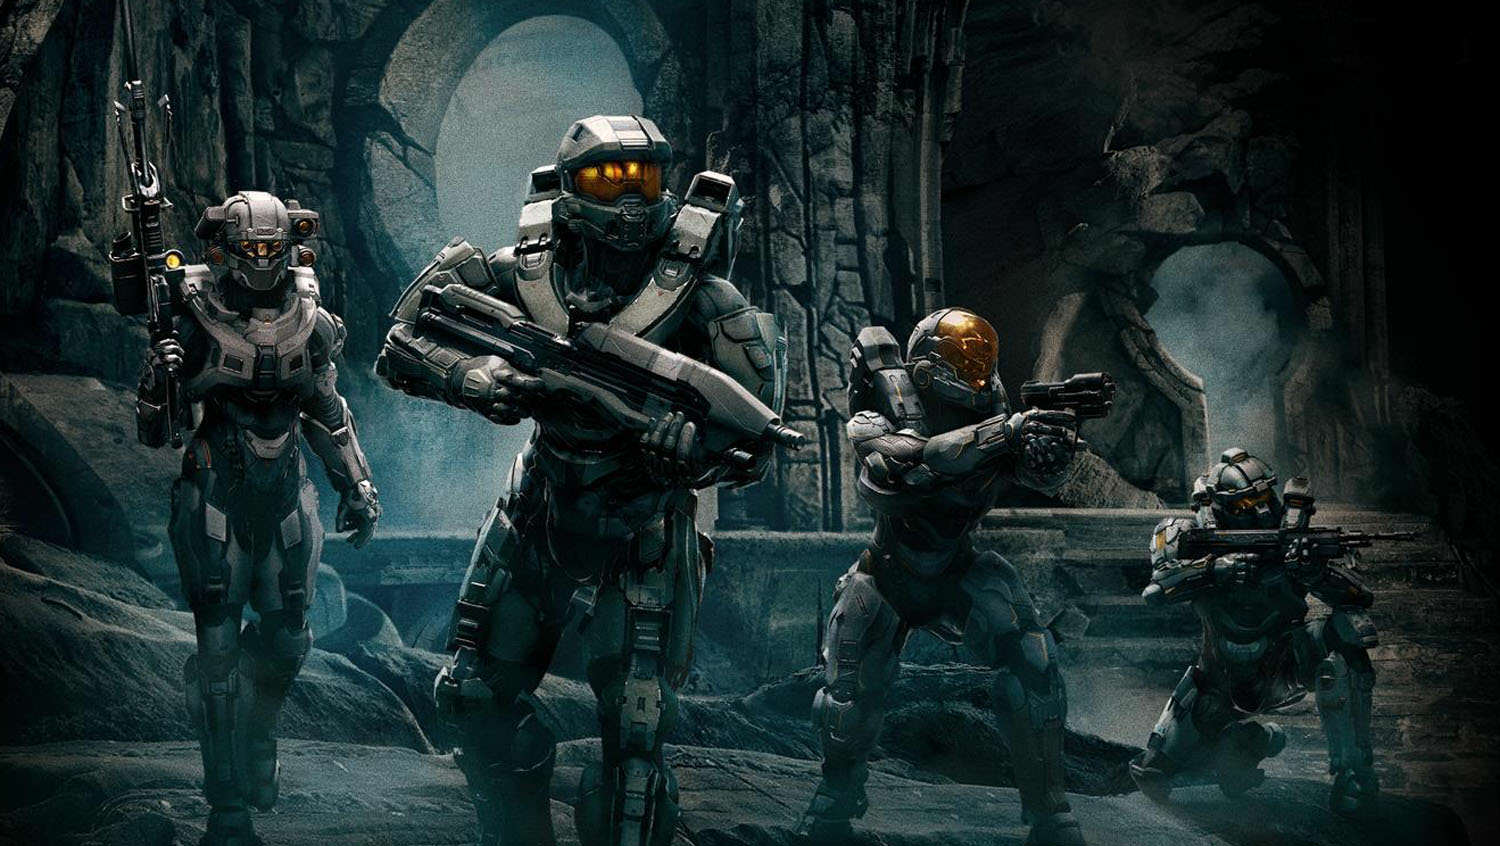 Halo 5 Steven Spielberg Is Still Making A Halo TV Show